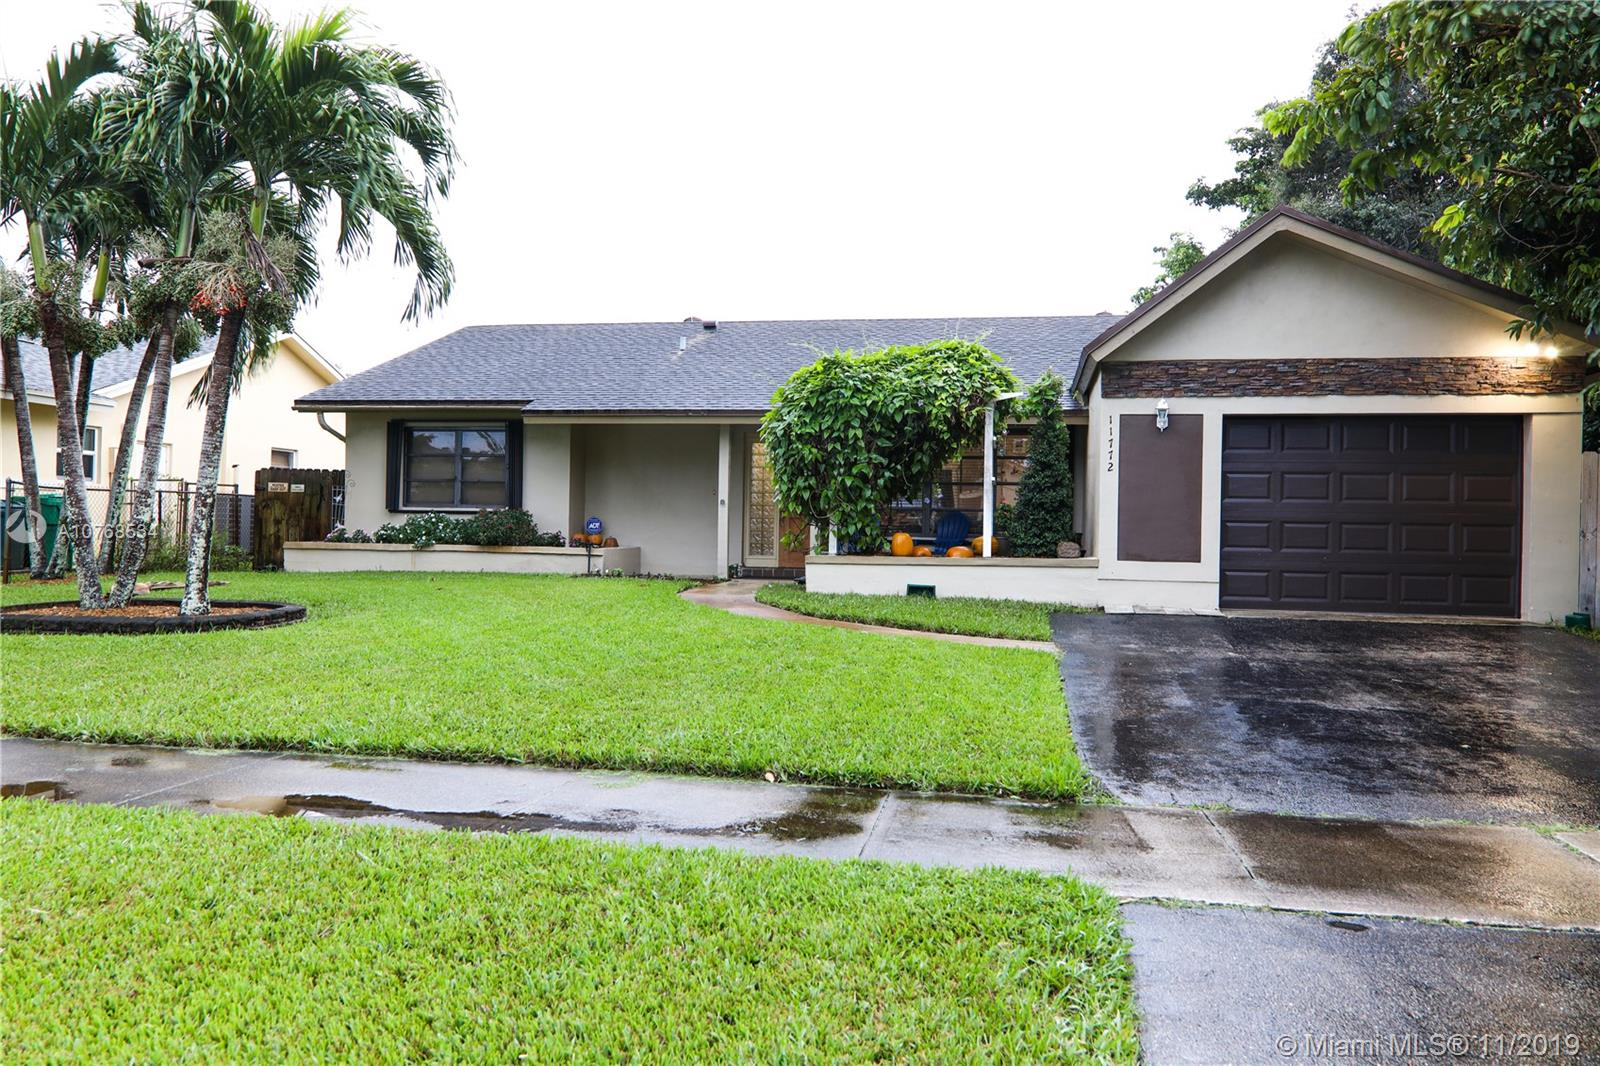 A TRUE GEM IN THE HEART OF THE IDYLIC FLAMINGO GARDENS IN COOPER CITY! YOU WILL FALL IN LOVE WITH THIS IMPECCABLE AND RELAXING CORNER HOUSE W/PLENTY OF NATURAL LIGHT. THIS STUNNING, TOTALLY REMODELED, METICULOUSLY WELL-MAINTAINED HOME W/ UPGRADED FINISHES, 3 BEDS, 2 FULL BATHS, TILE THROUGHOUT. COZY MASTER SUITE w/CUSTOM-MADE MASTER CABANA BATH. HUGE WALK-IN CLOSET.  SPACIOUS FAMILY ROOM, 3RDBEDROOM IS A LEGALLY CONVERTED GARAGE. CUSTOM-MADE KITCHEN W/GRANITE COUNTER TOPS, STAINLESS-STEEL APPLIANCES, CHANGING LED LIGHTS INSIDE THE CABINETRY. SEPARATE LAUNDRY ROOM. PRIVATE SCREENED-IN PORCH, SURROUNDED BY A FENCED BACKYARD OASIS W/CUSTOM-MADE SALT WATER SMART POOL W/CASCADE. PERFECT FOR ENTERTAINING. MINUTES TO I75 AND 595. NO HOA. A+ SCHOOLS. READY TO MOVE IN! *CALL THIS HOUSE YOUR HOME!*